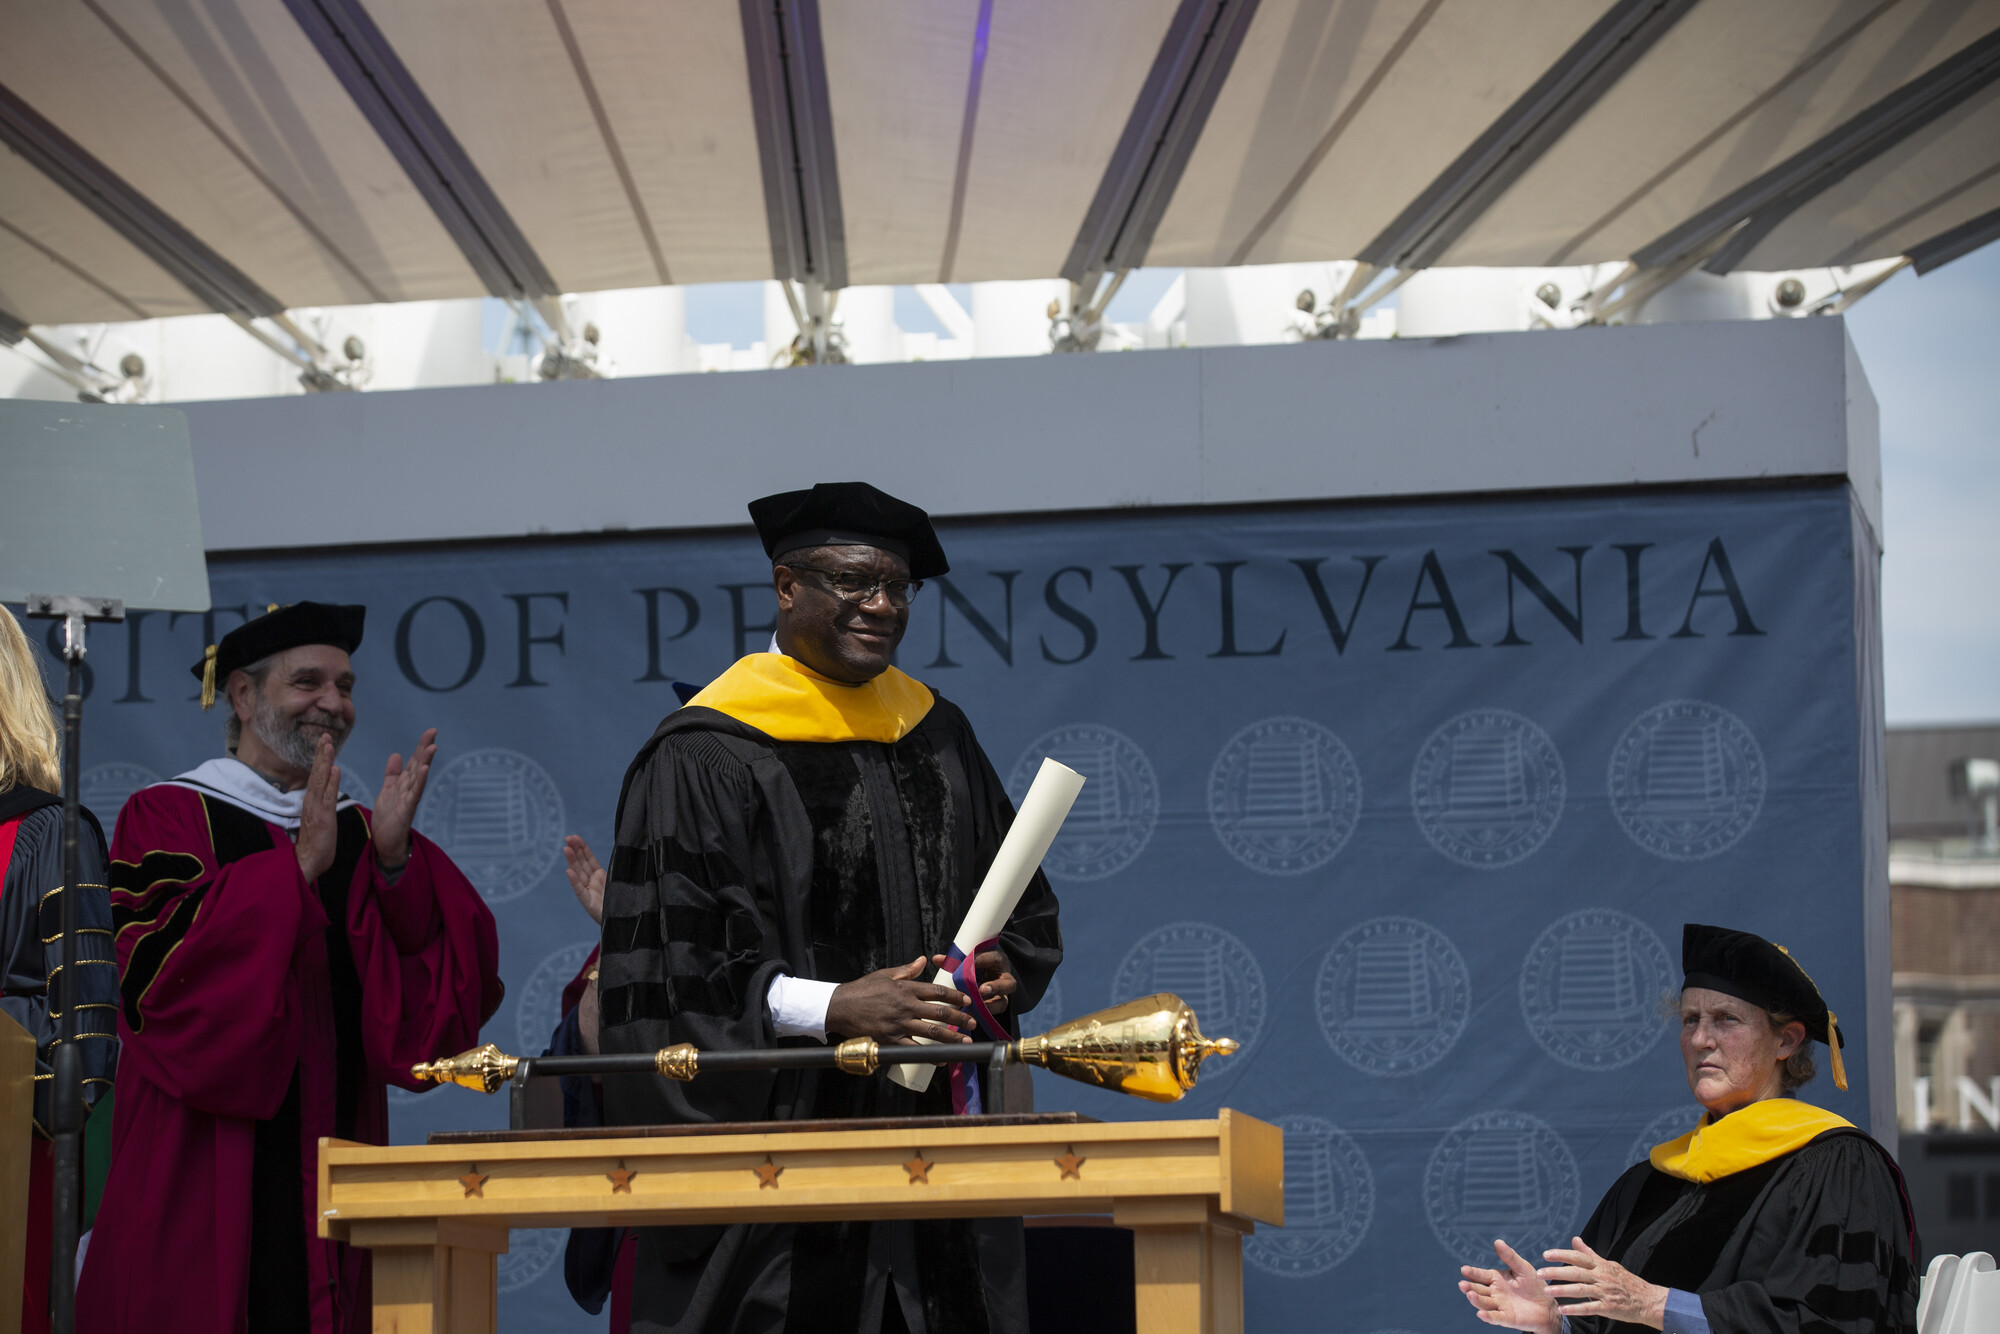 Michael Delli Carpini claps as Denis Mukwege holds his honorary degree, with Temple Grandin seated and clapping.